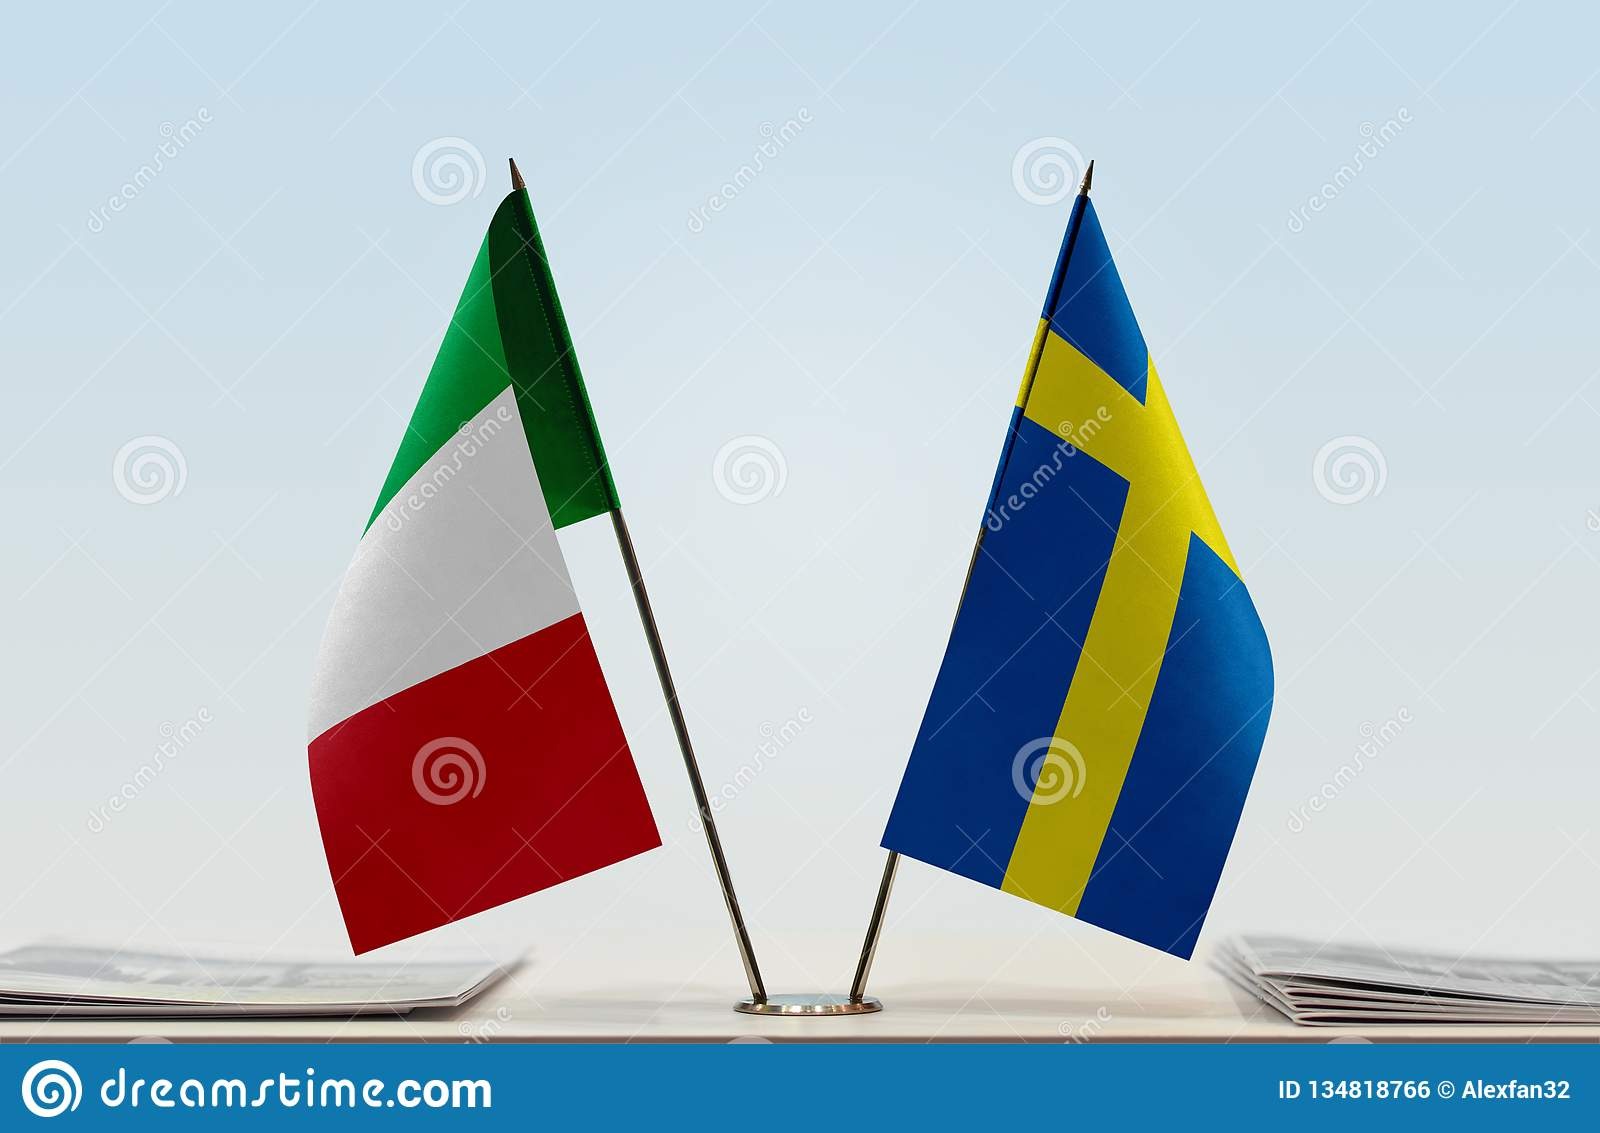 Flags of Italy and Sweden